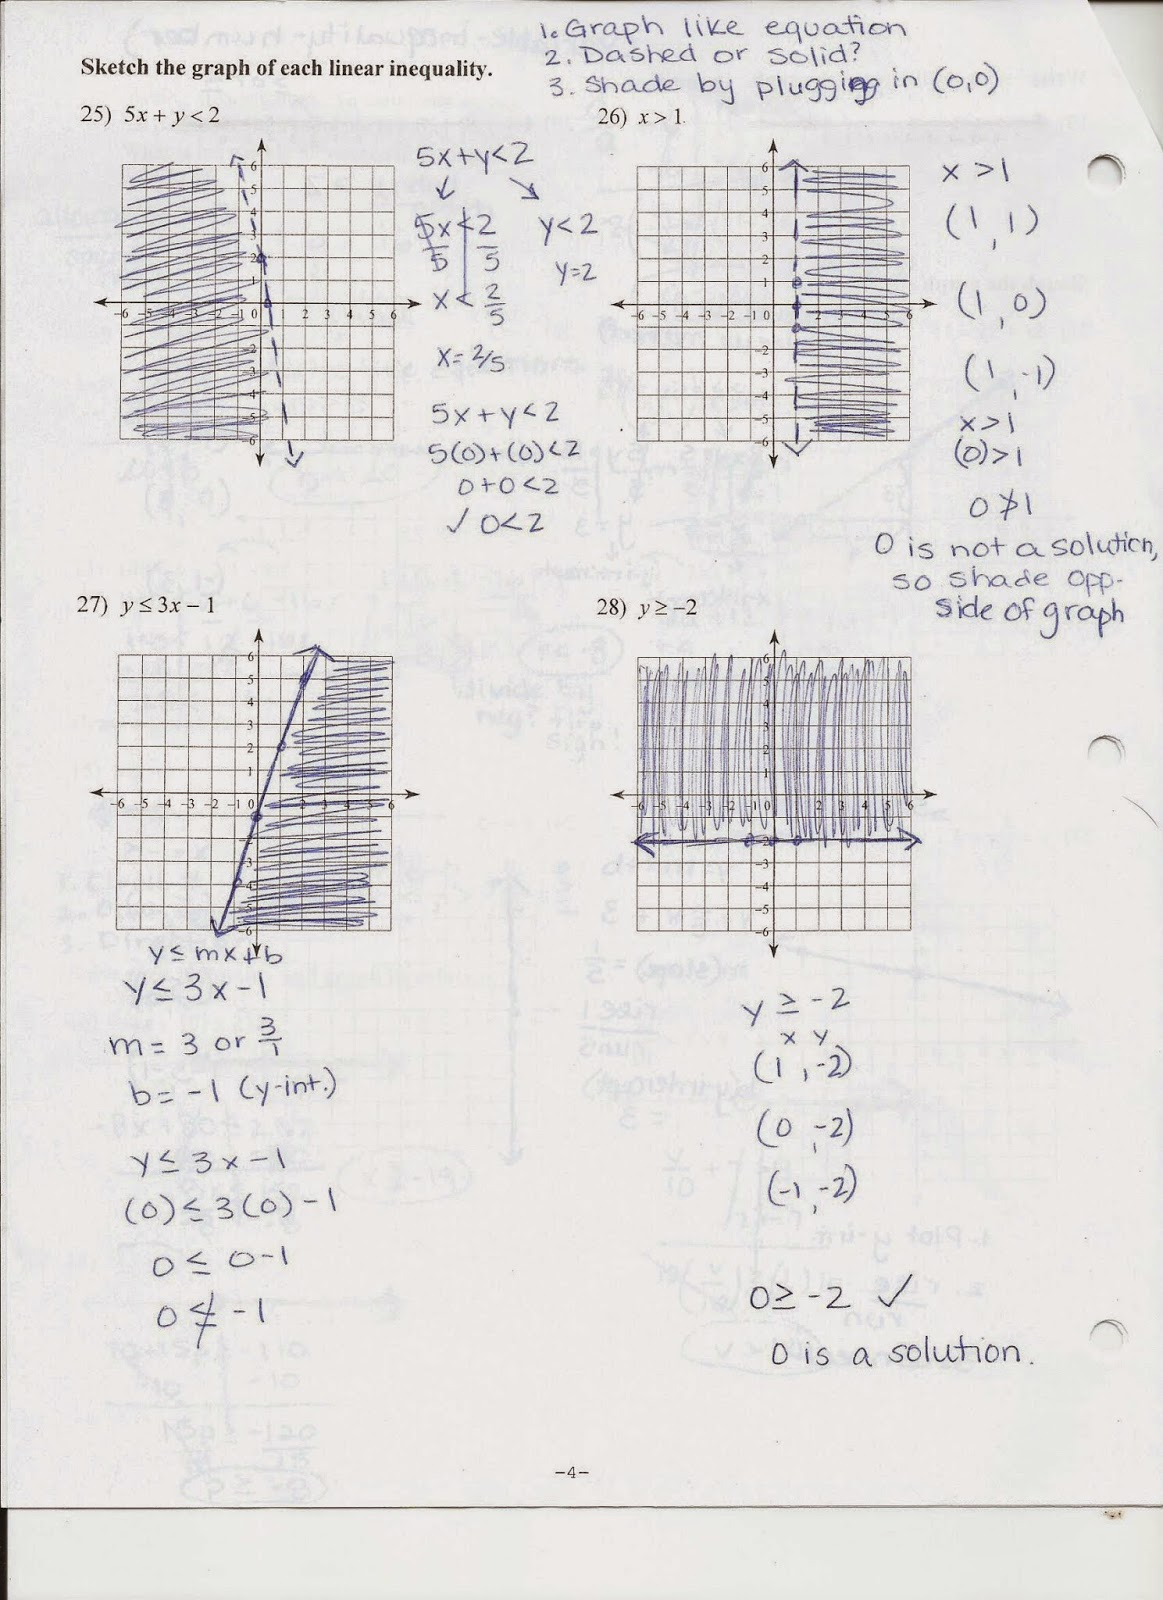 my math lab week 4 solving inequalities and graphing equation quiz Mat 116 (math 116) mat/116 class mat week 1 and 2 quiz mat 116 week 4 assignment: week 3 and 4 quiz mat 116 week 6 assignment: solving inequalities and graphing equations mat 116 assignment: systems of equations and inequalities mat 116 exercise.